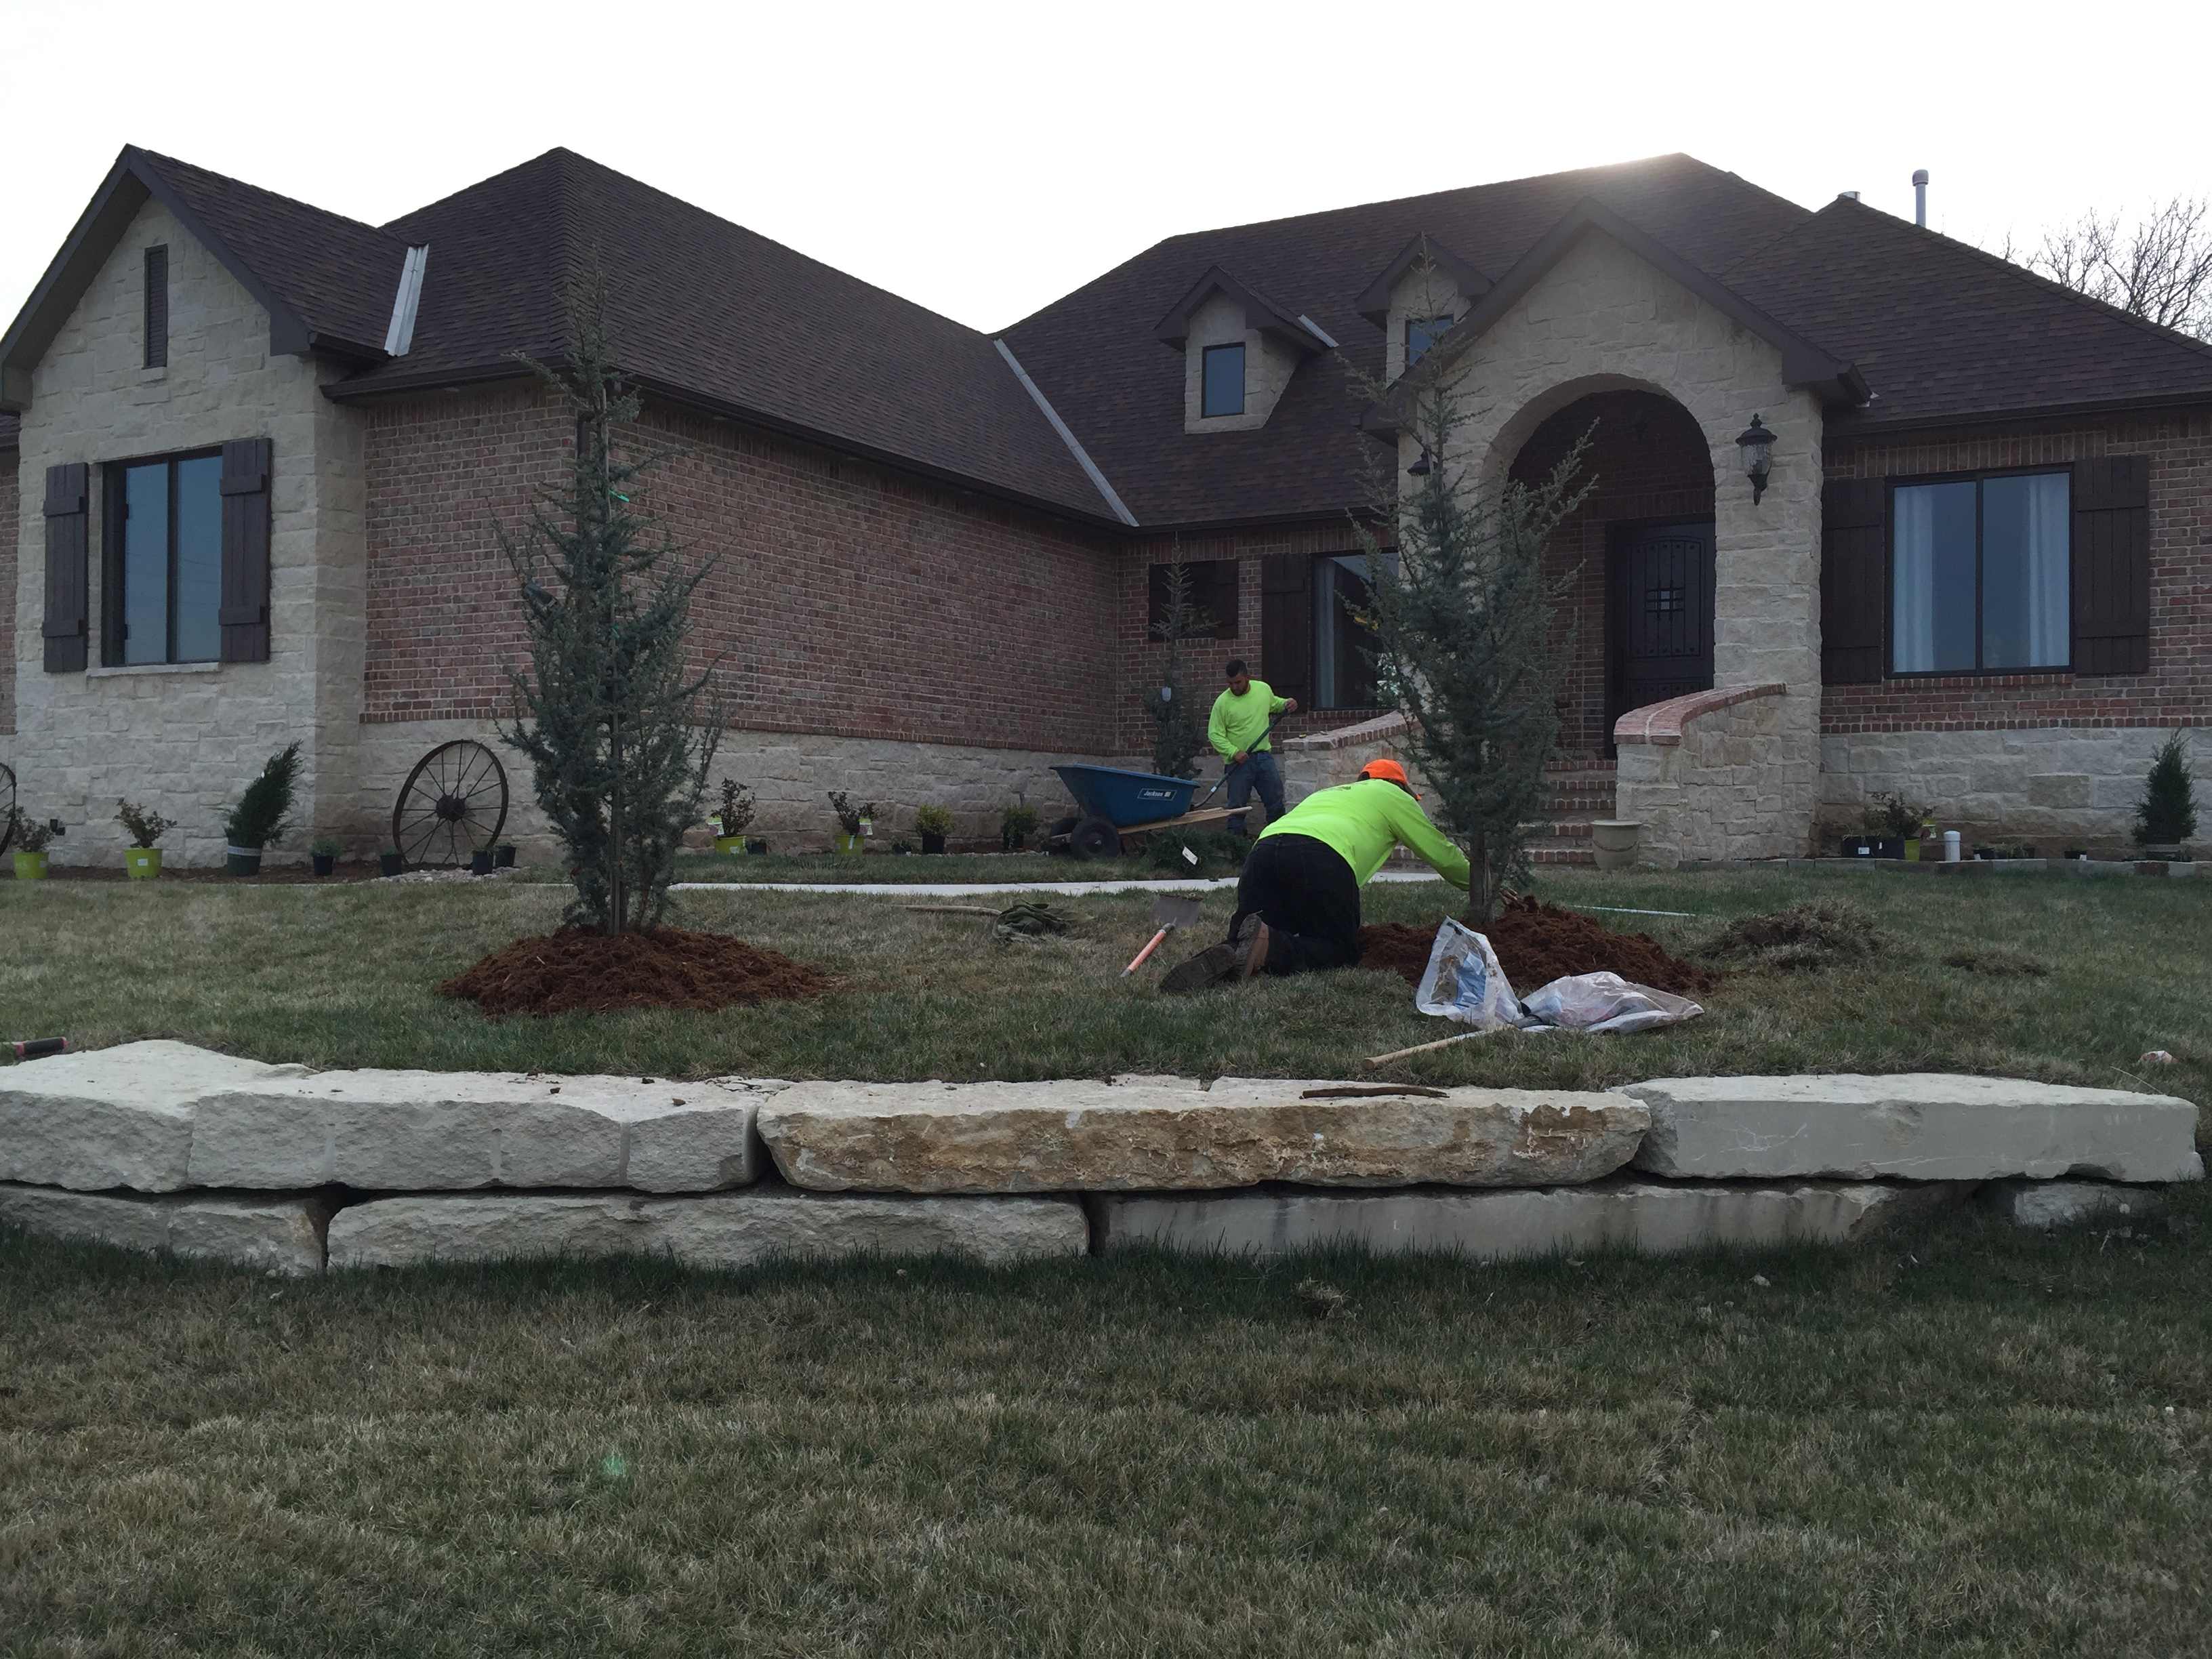 New home landscaping daniels lawn and landscaping services for New home garden design